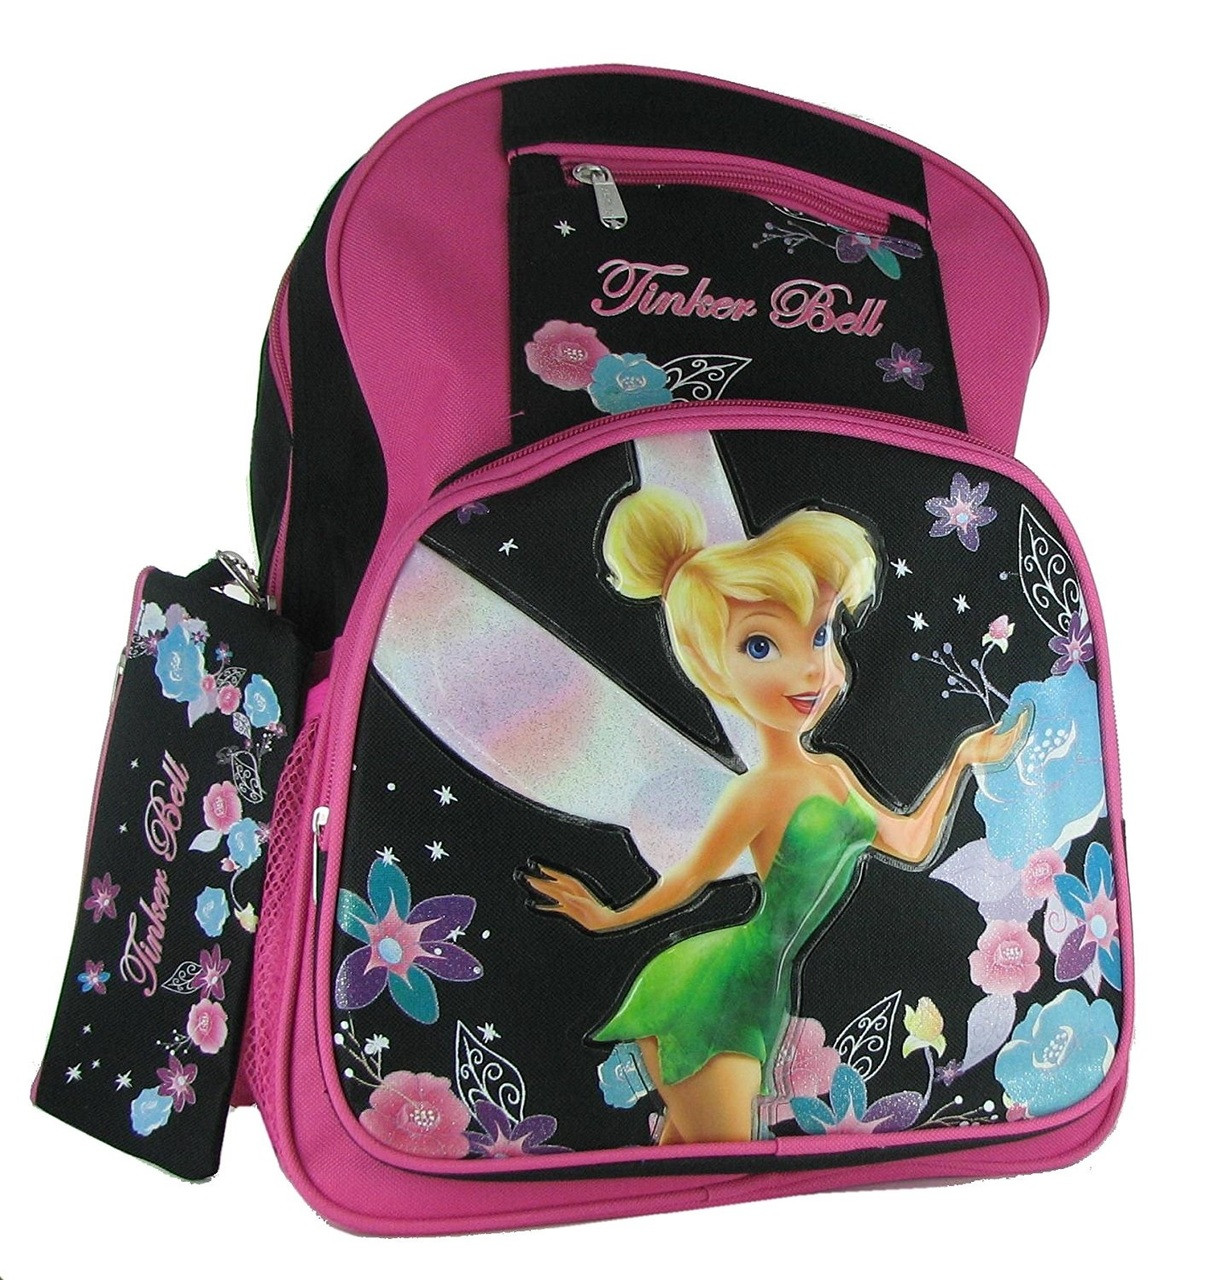 Backpack - Tinkerbell - Large 16 Inch - Girls